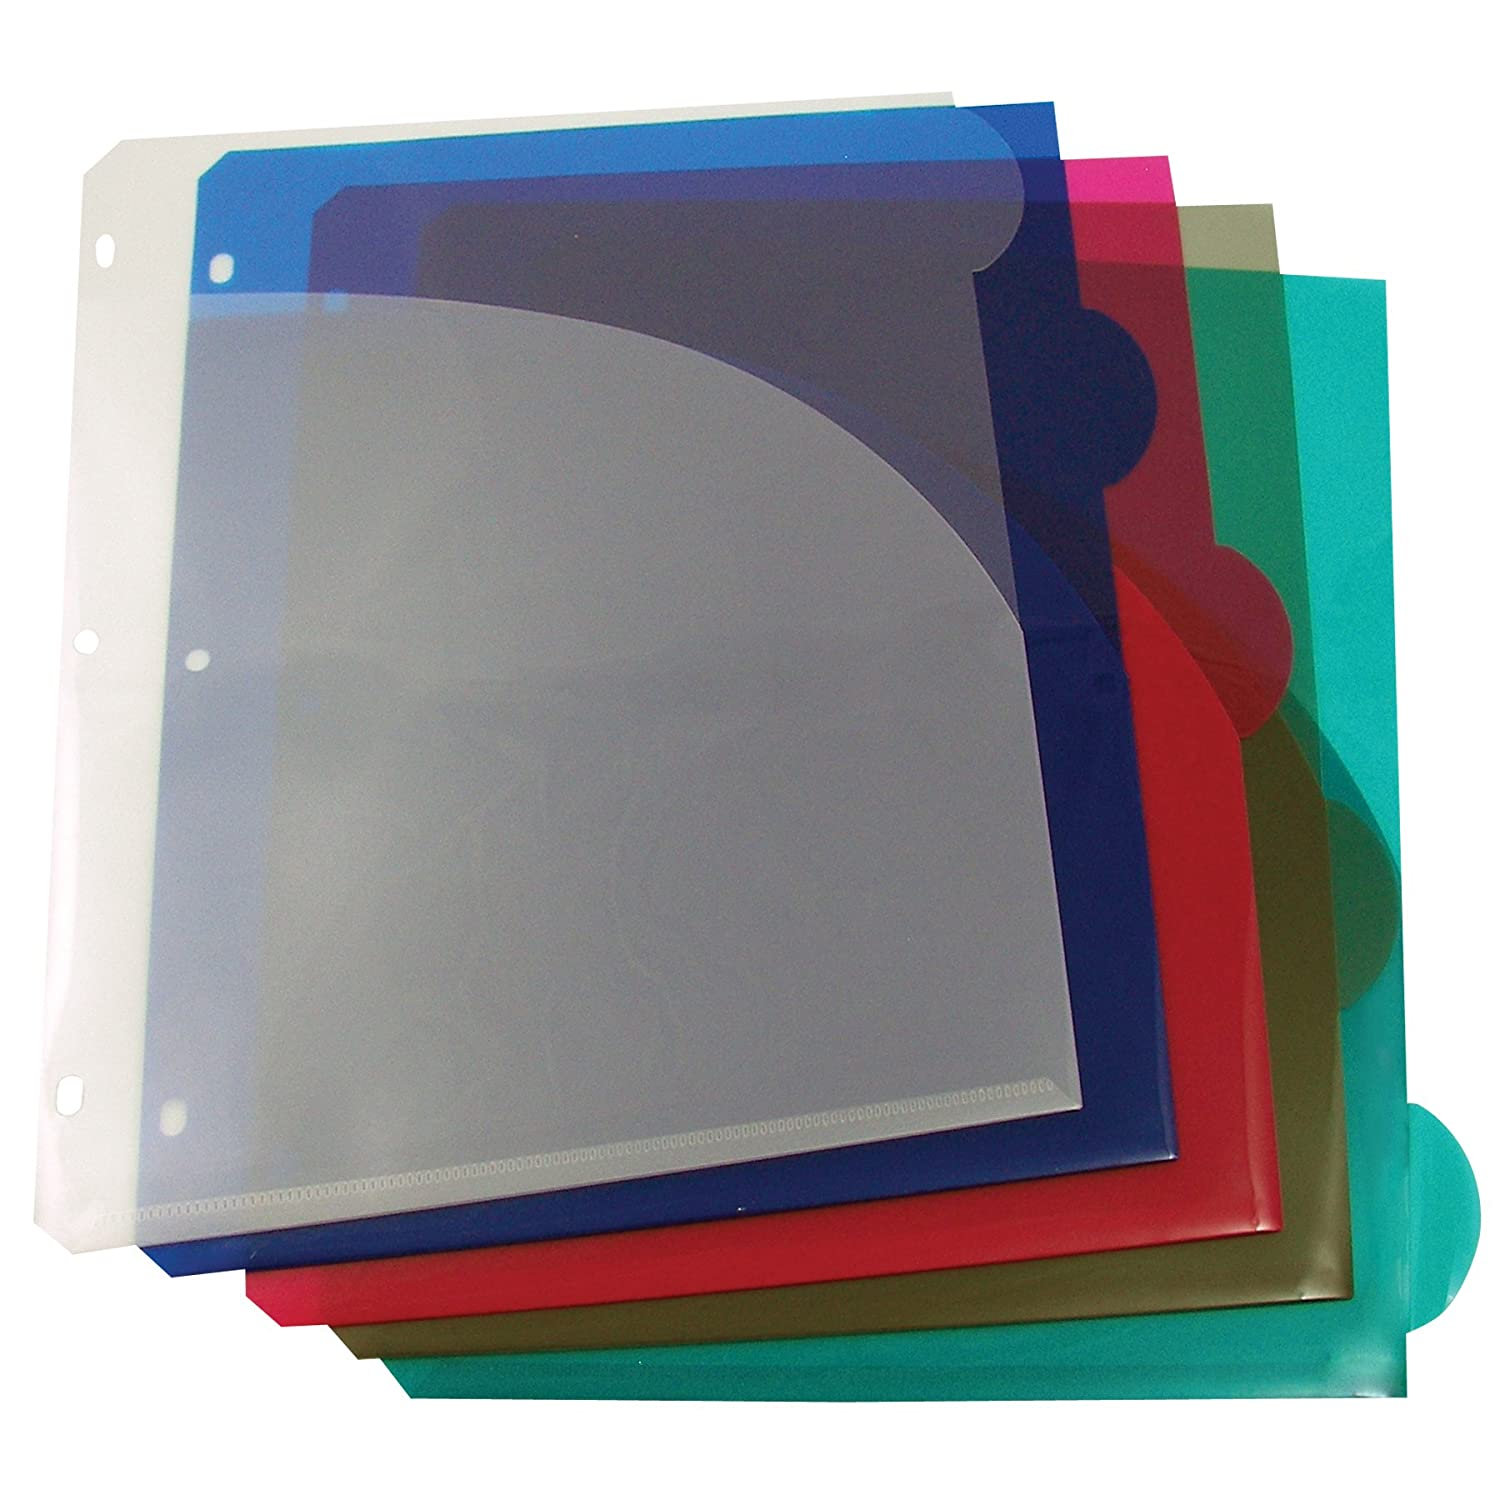 C-Line Specialty Colored Tab Polypropylene Index Dividers with Slant Pockets, Multi-Color, Fits 3-Ring Binders, One 5-Tab Set (05460)